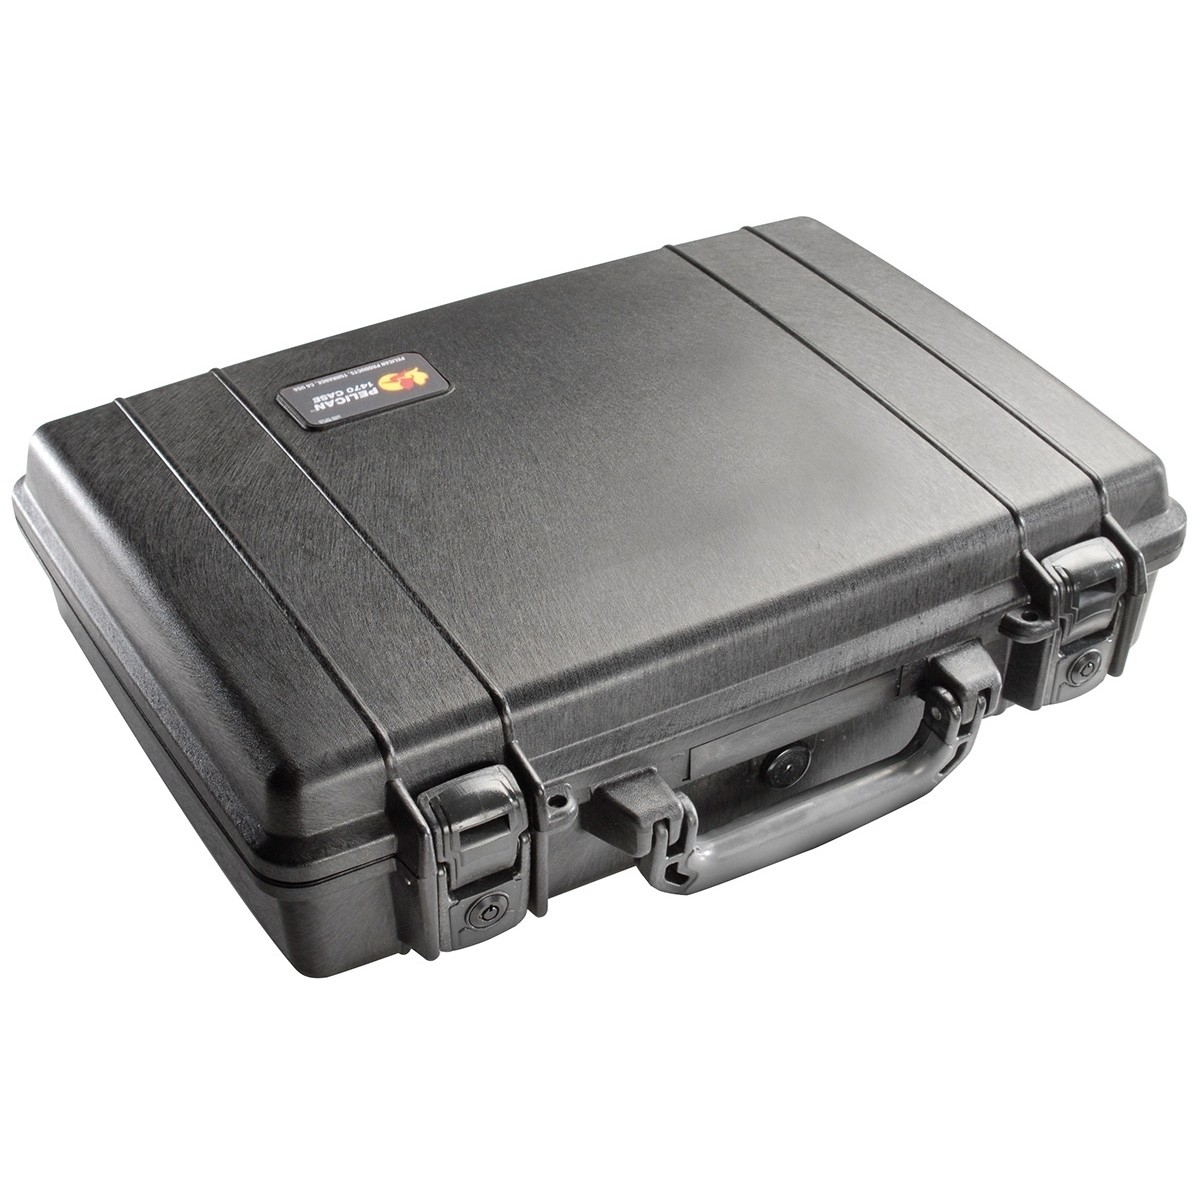 Pelican 1470 Laptop Carry Case